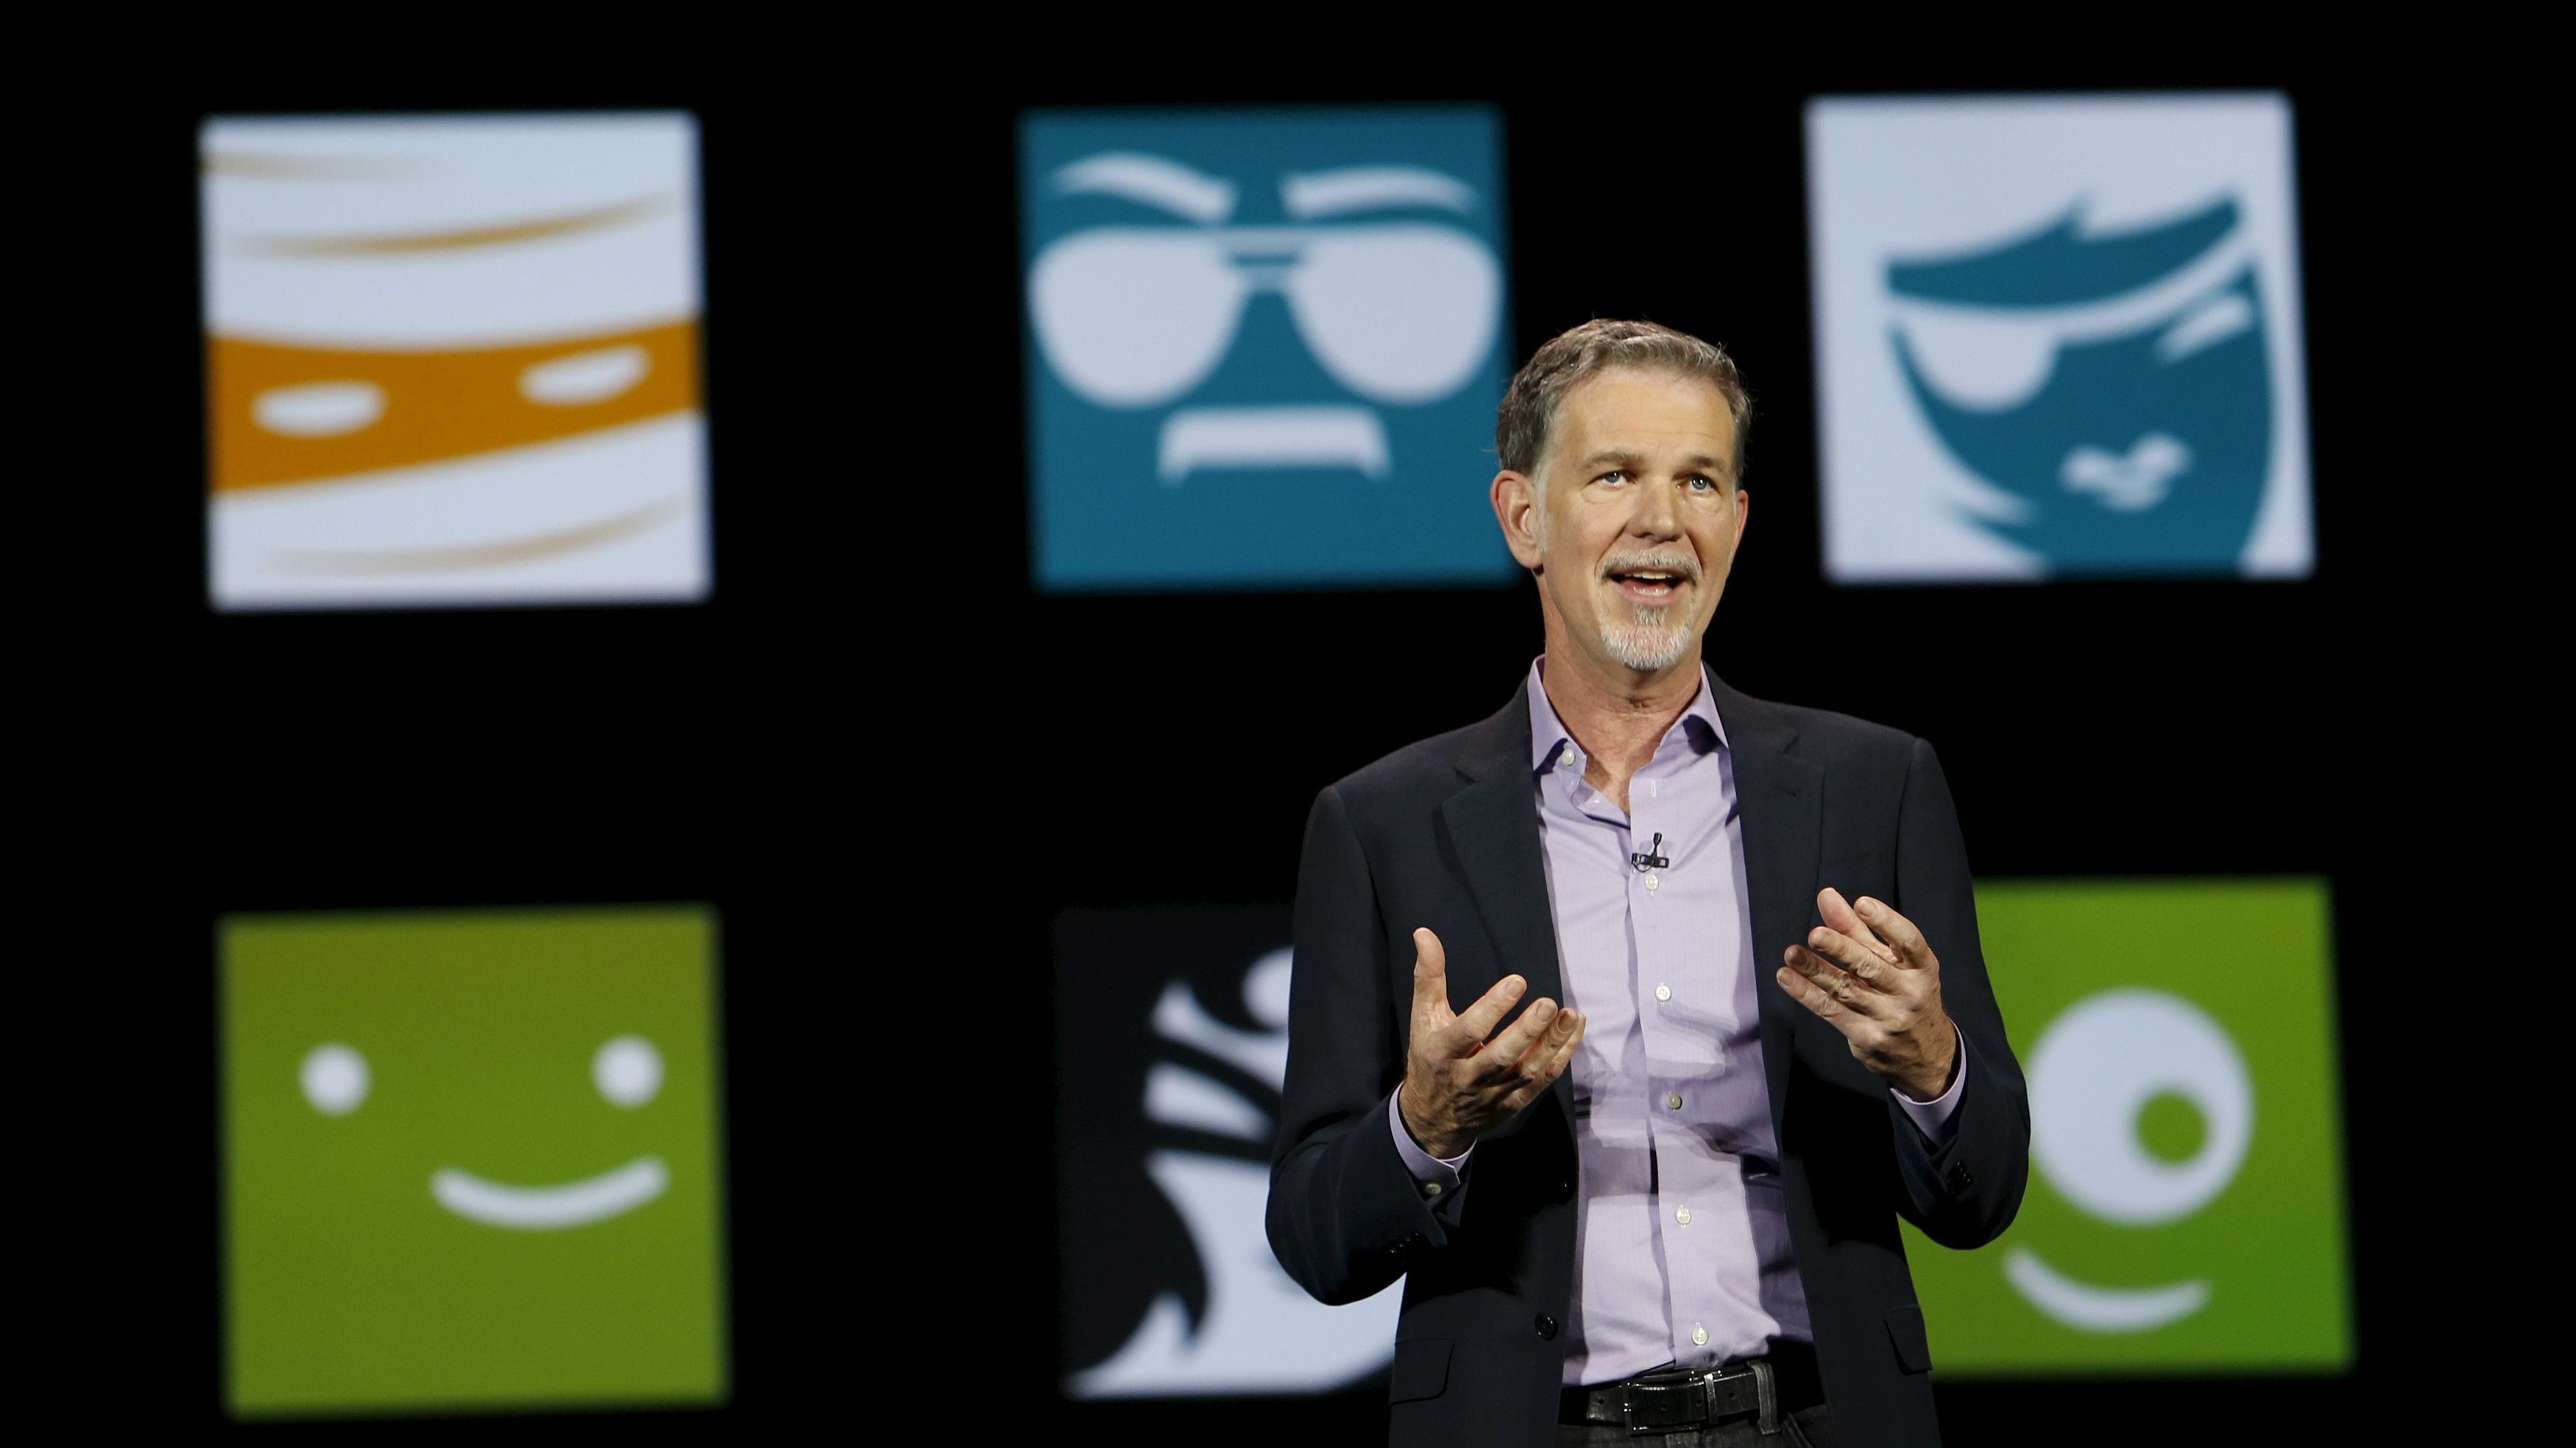 Netflix CEO Reed Hastings says apps are the new TV channels